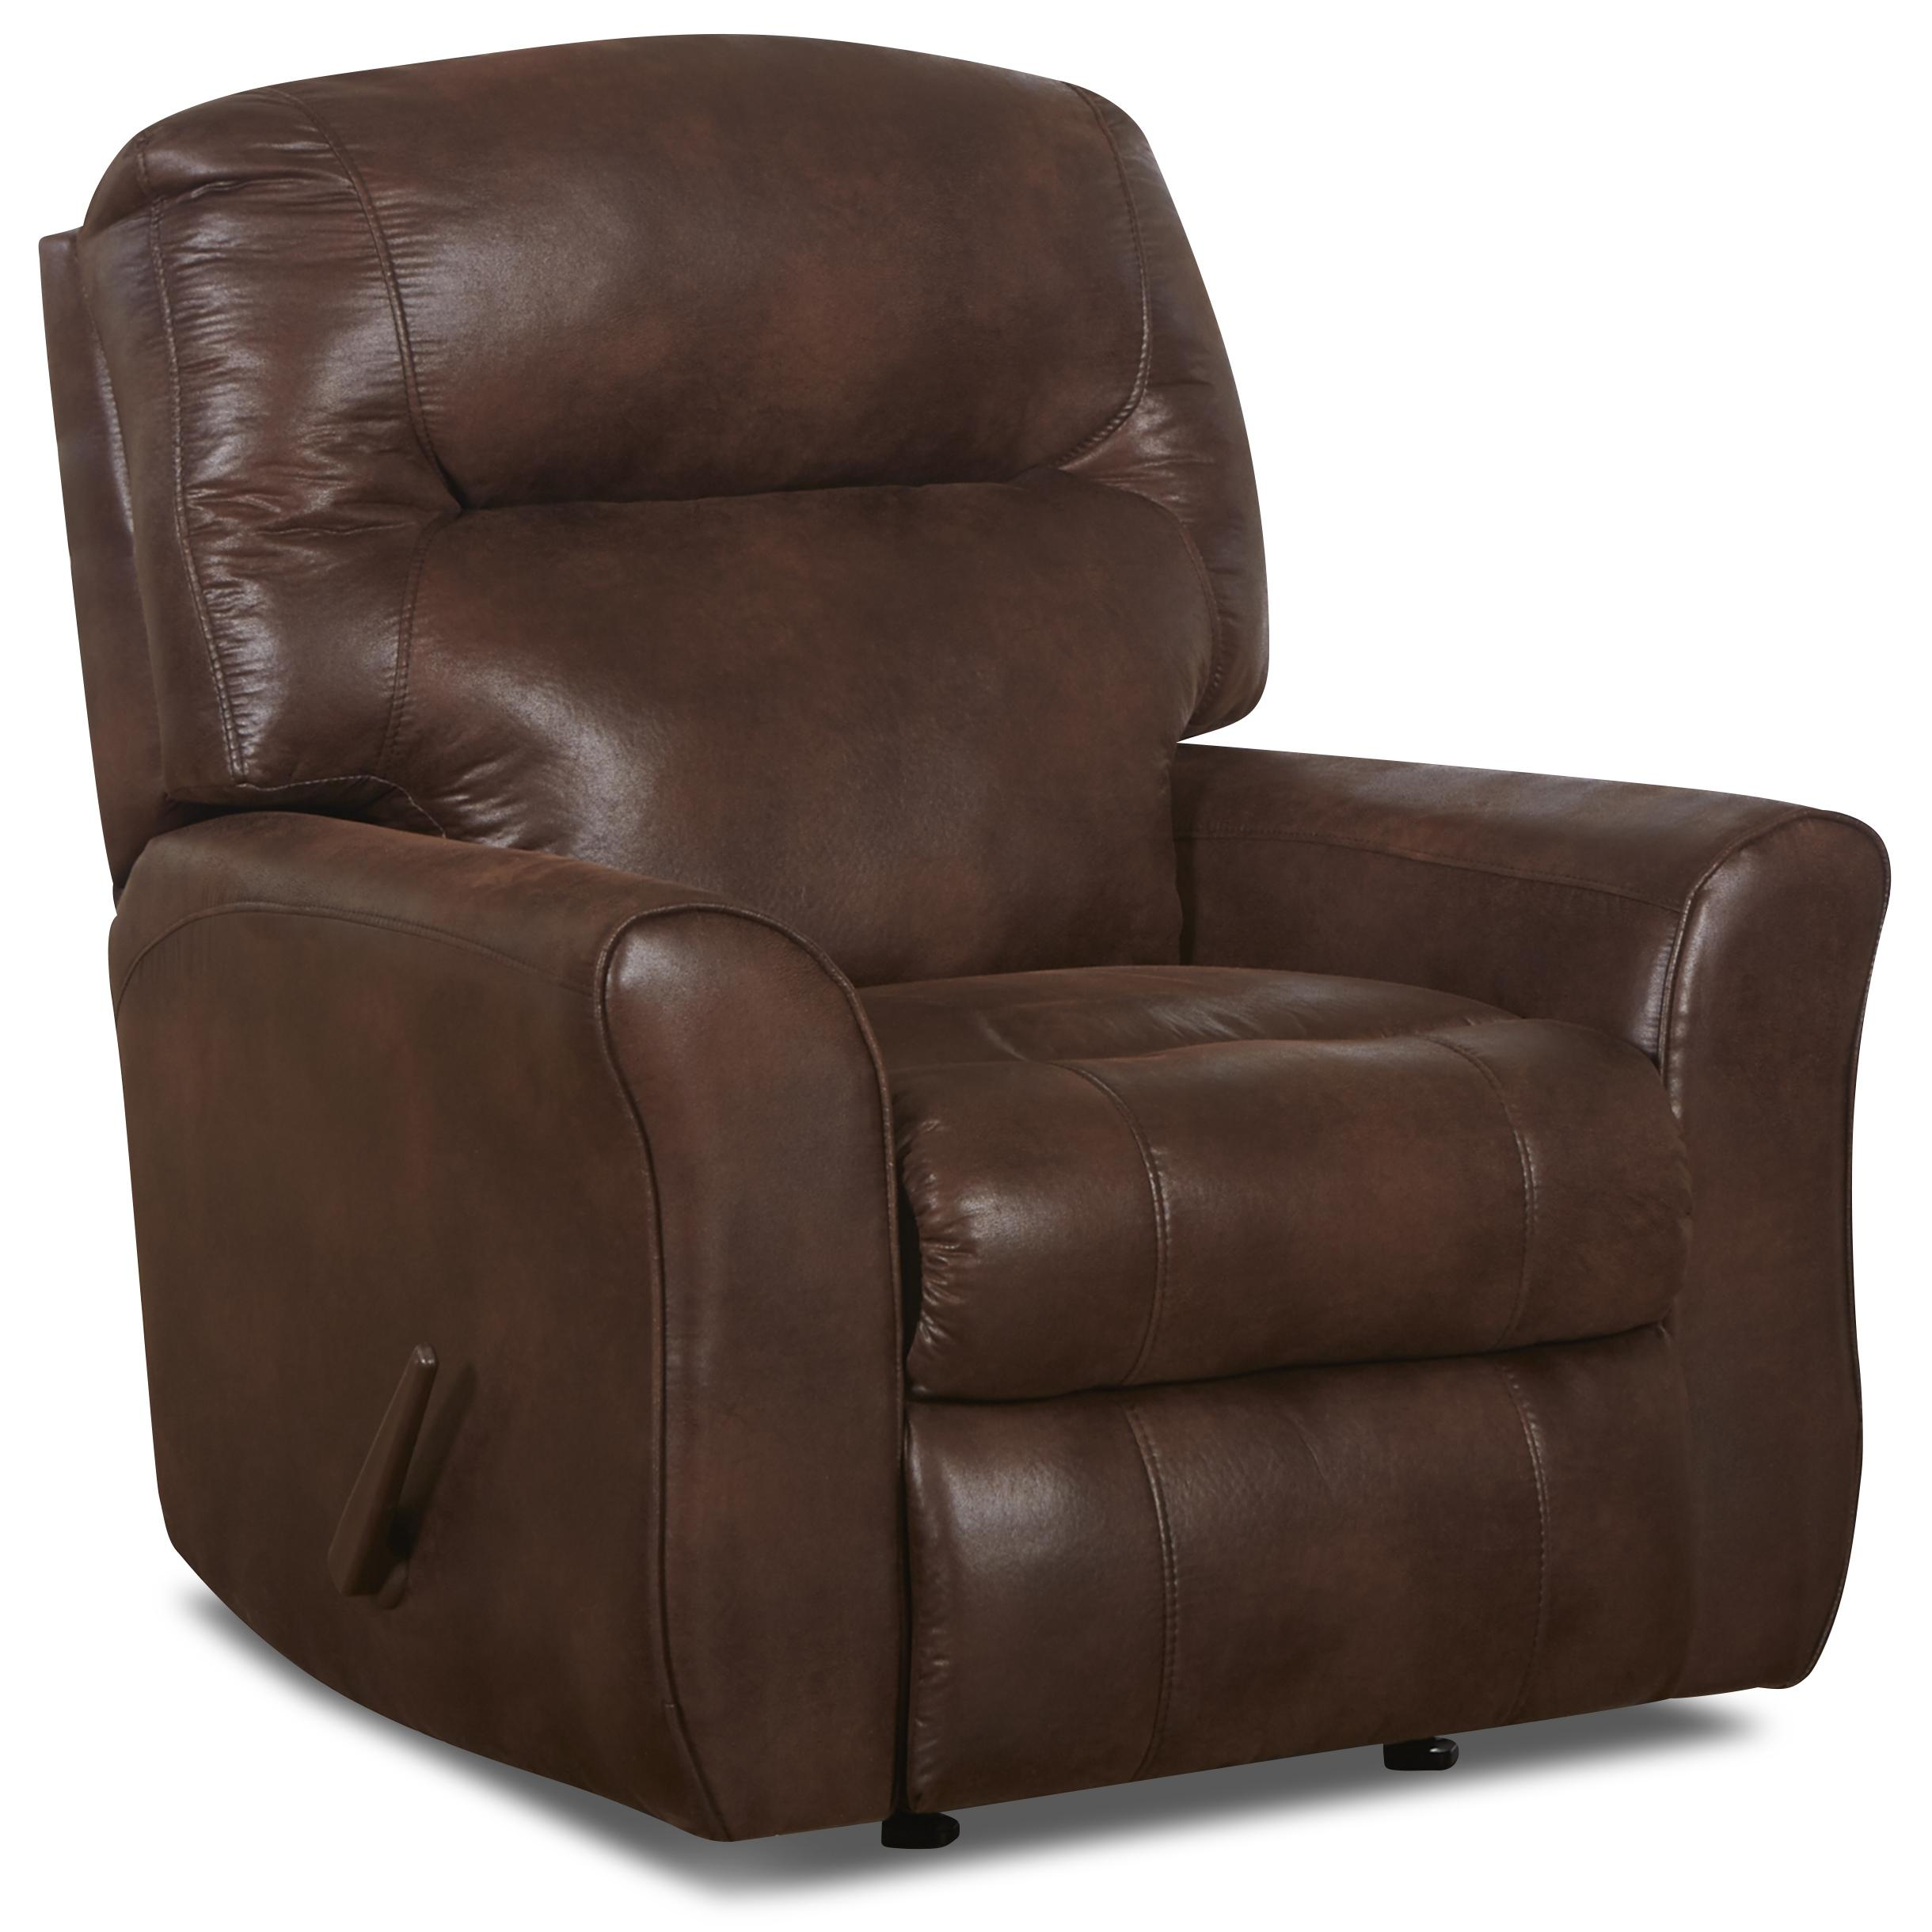 Casual Leather Reclining Chair with Attached Back Pillows and Outside Handle Activation